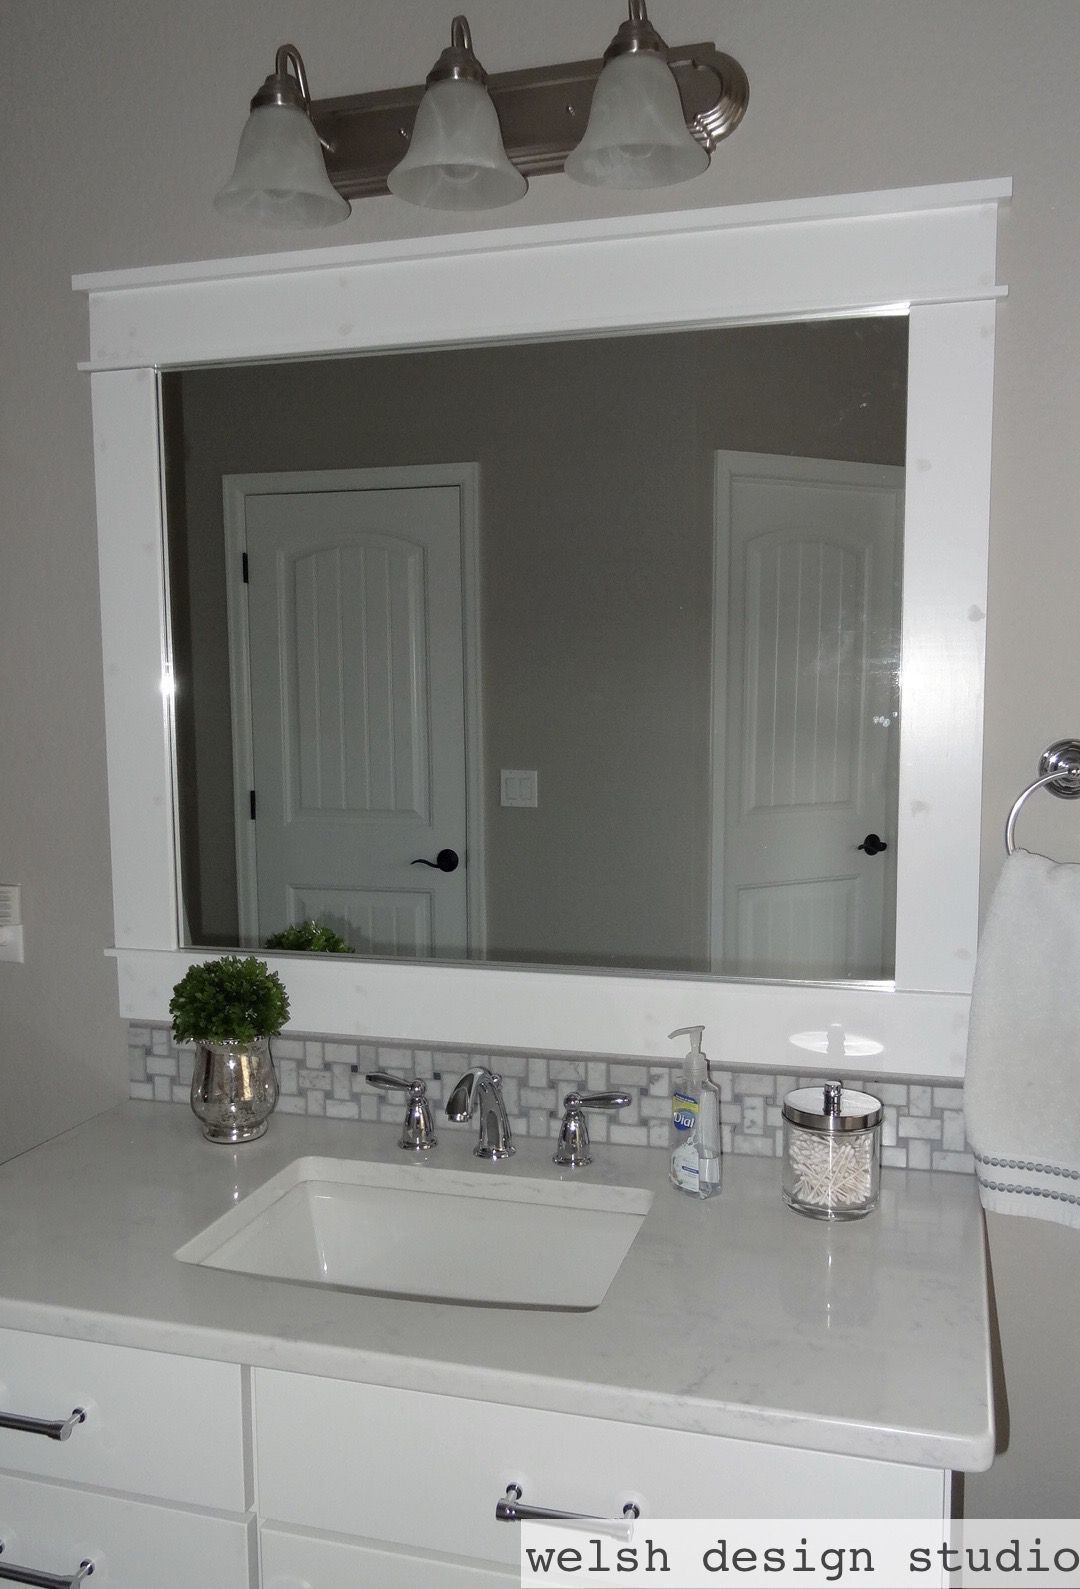 Visit Our Blog To See How We Built And Installed These Craftsman Style Diy Framed Bathroom Mirror Bathroom Mirror Frame Bathroom Mirrors Diy Craftsman Bathroom